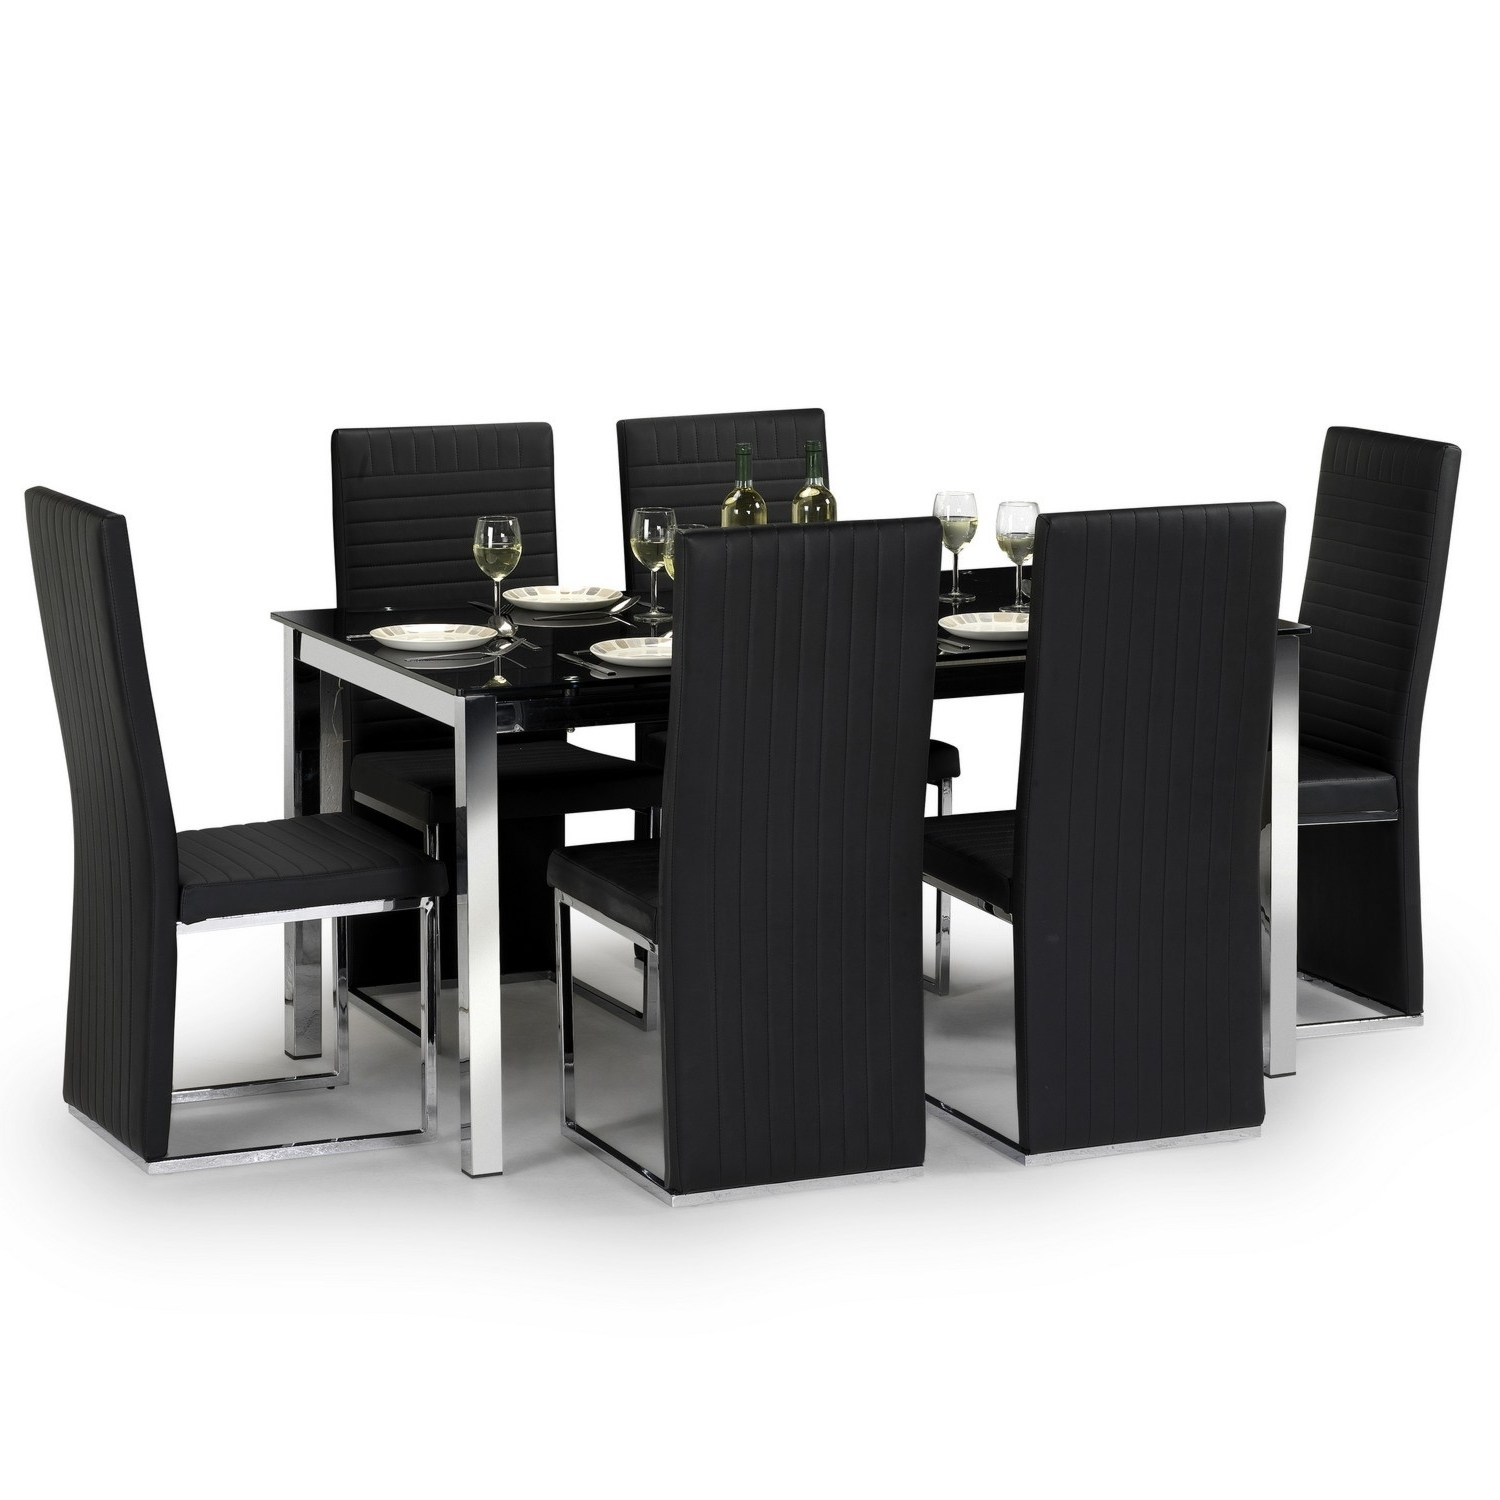 Fashionable Tempo Dining Table And 6 Chairs Pertaining To 6 Chair Dining Table Sets (View 15 of 25)